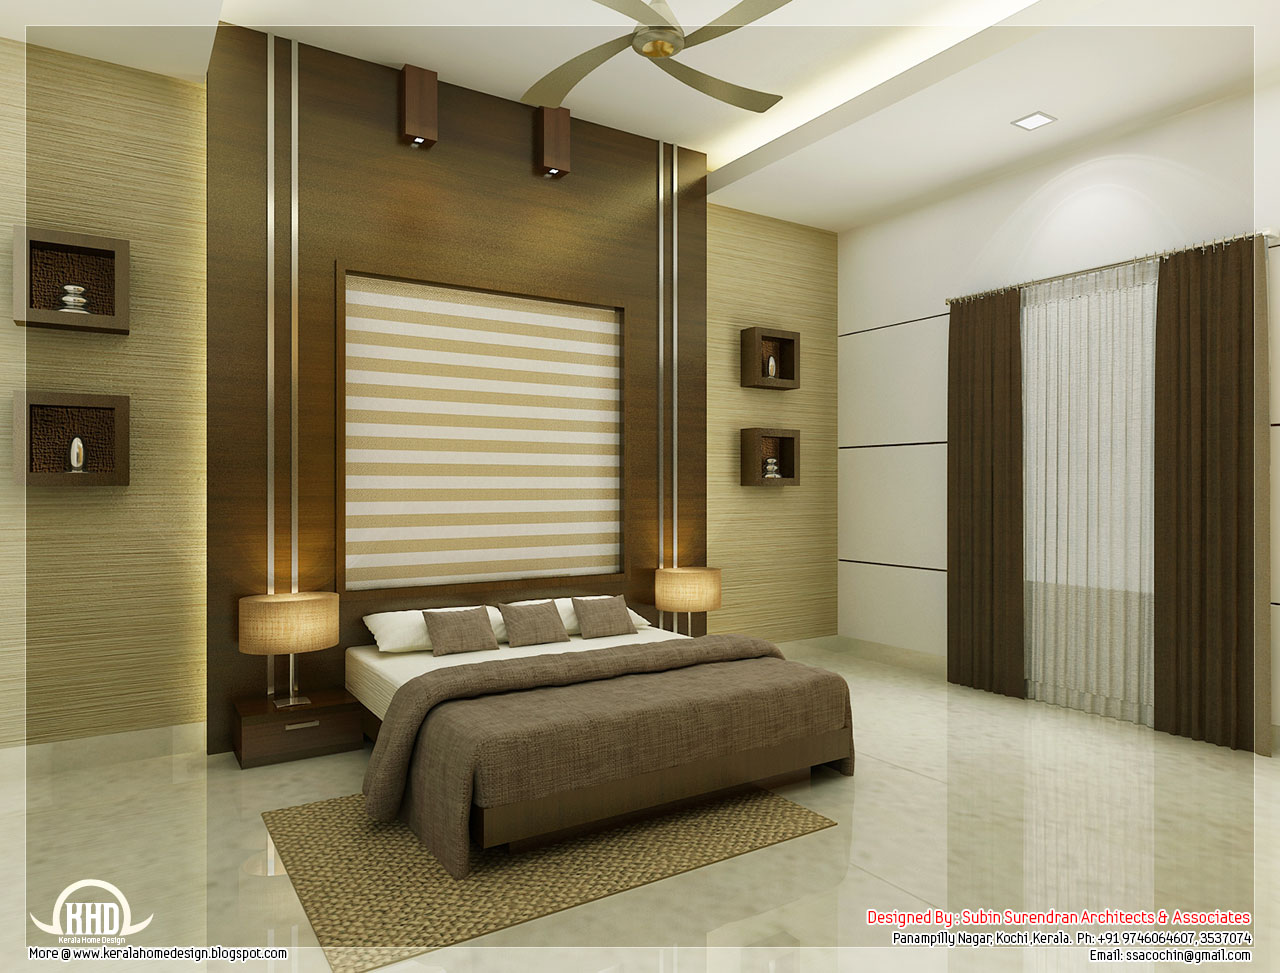 Beautiful bedroom interior designs kerala home for Stunning interior designs